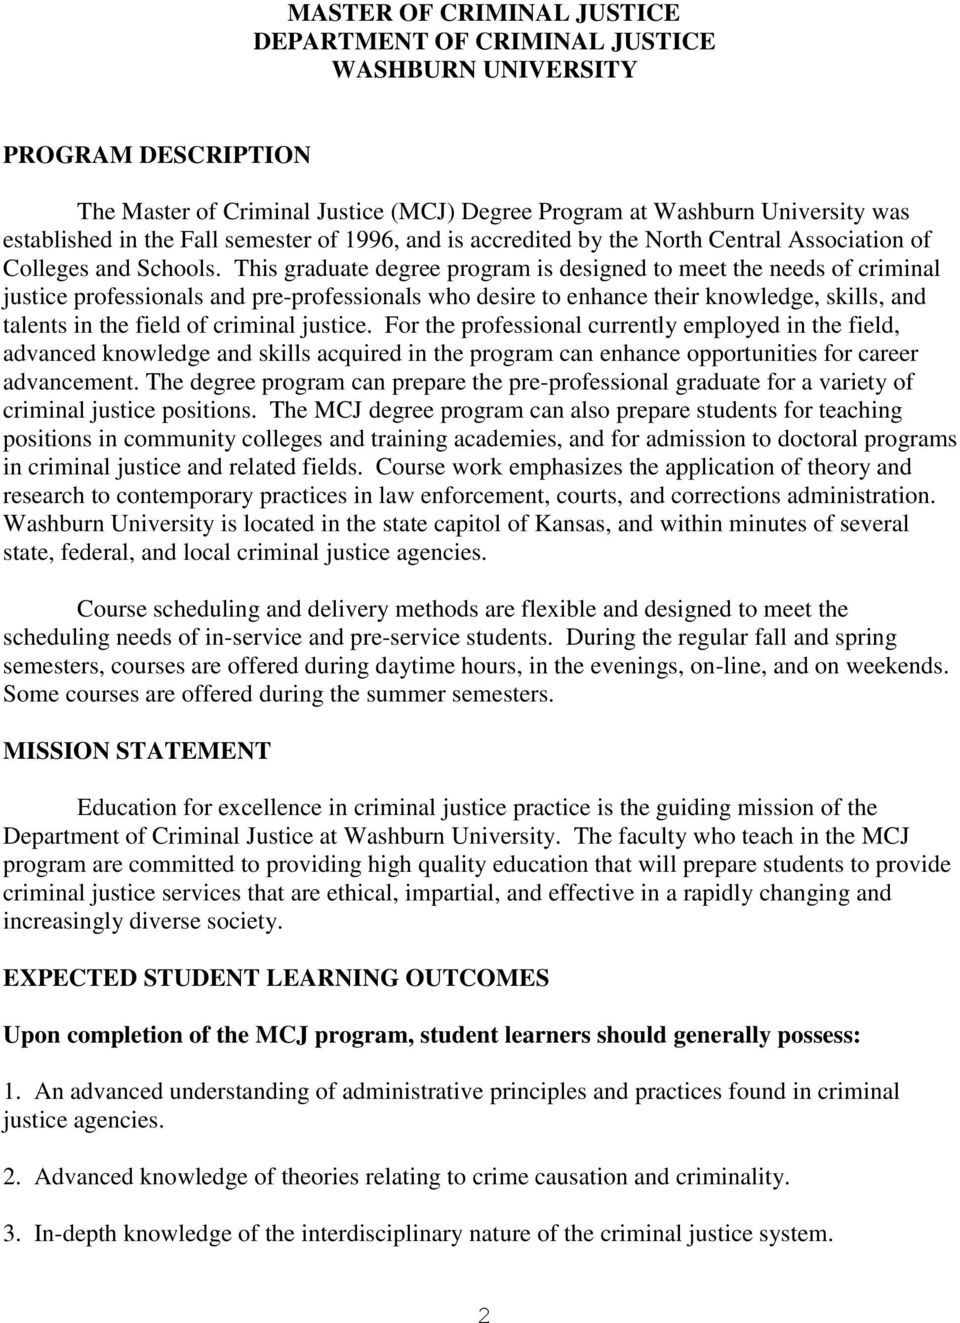 This graduate degree program is designed to meet the needs of criminal justice professionals and pre-professionals who desire to enhance their knowledge, skills, and talents in the field of criminal